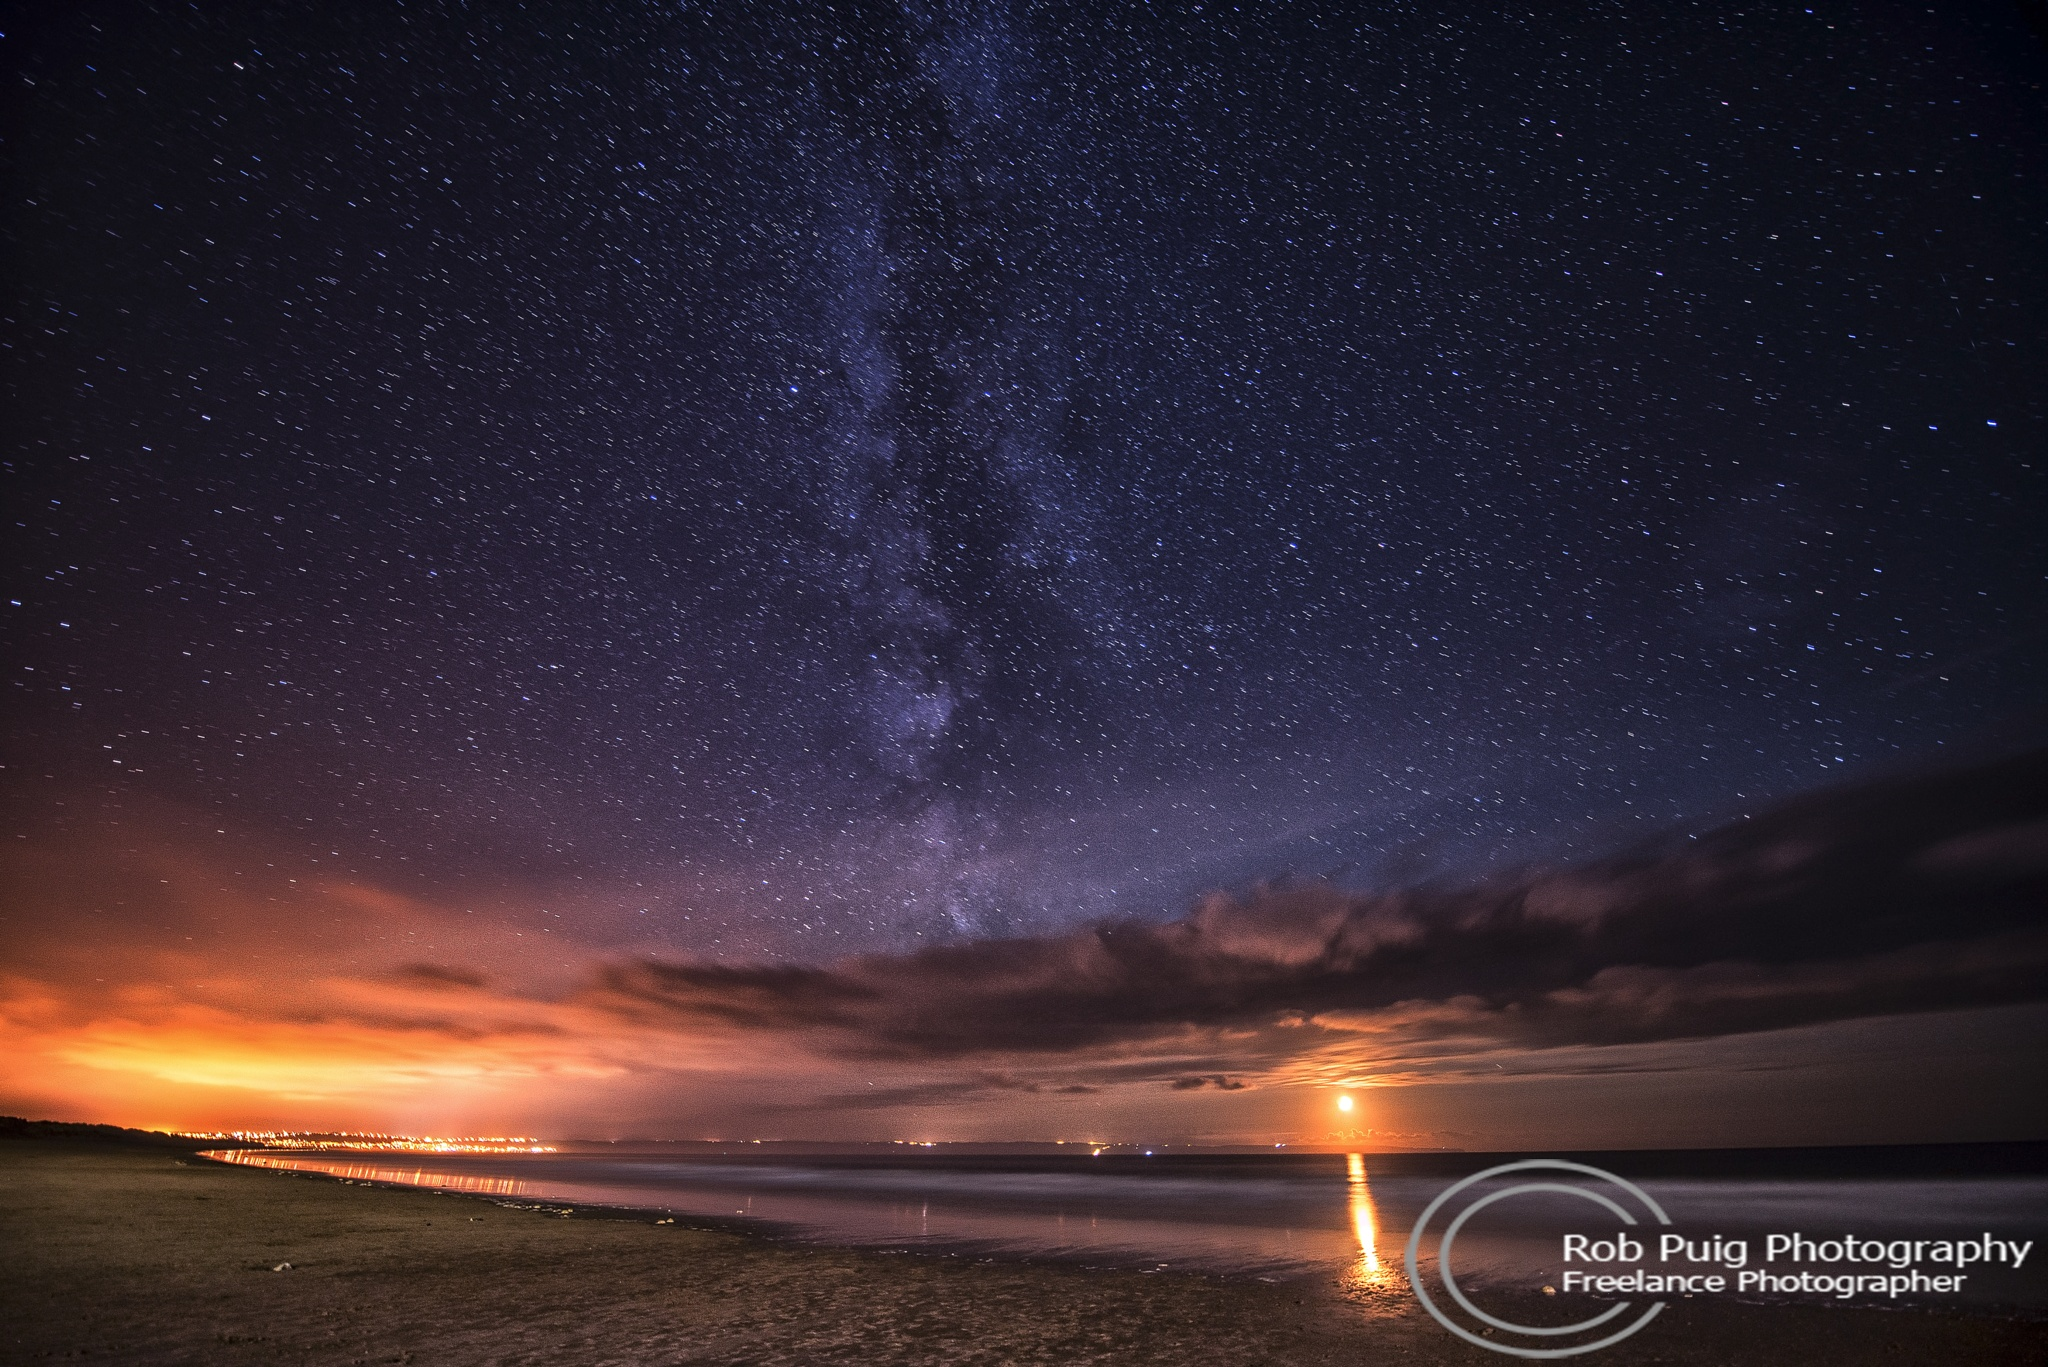 Under the night sky by Robert Puig